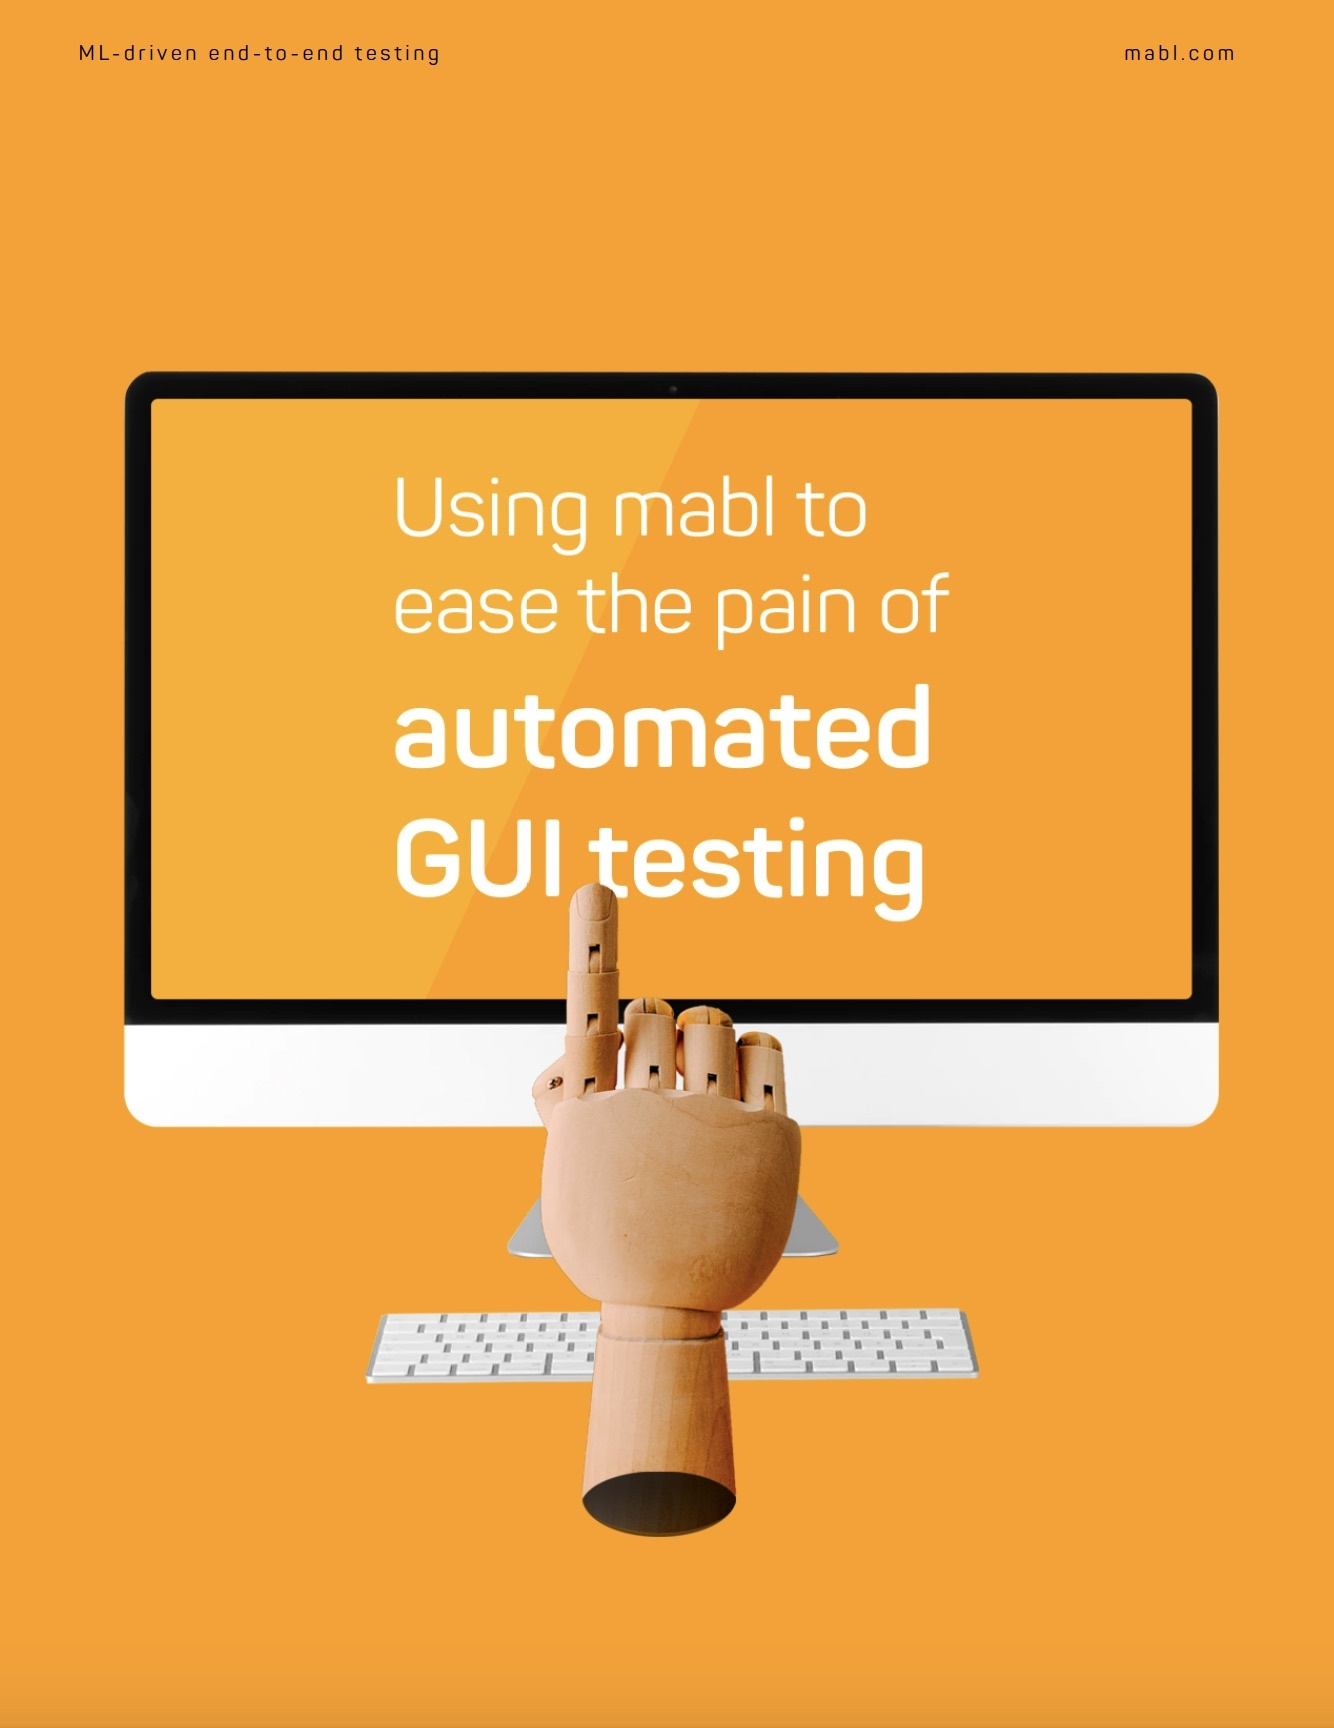 Using-mabl-to-ease-the-pain-of-automate-gui-testing_pdf